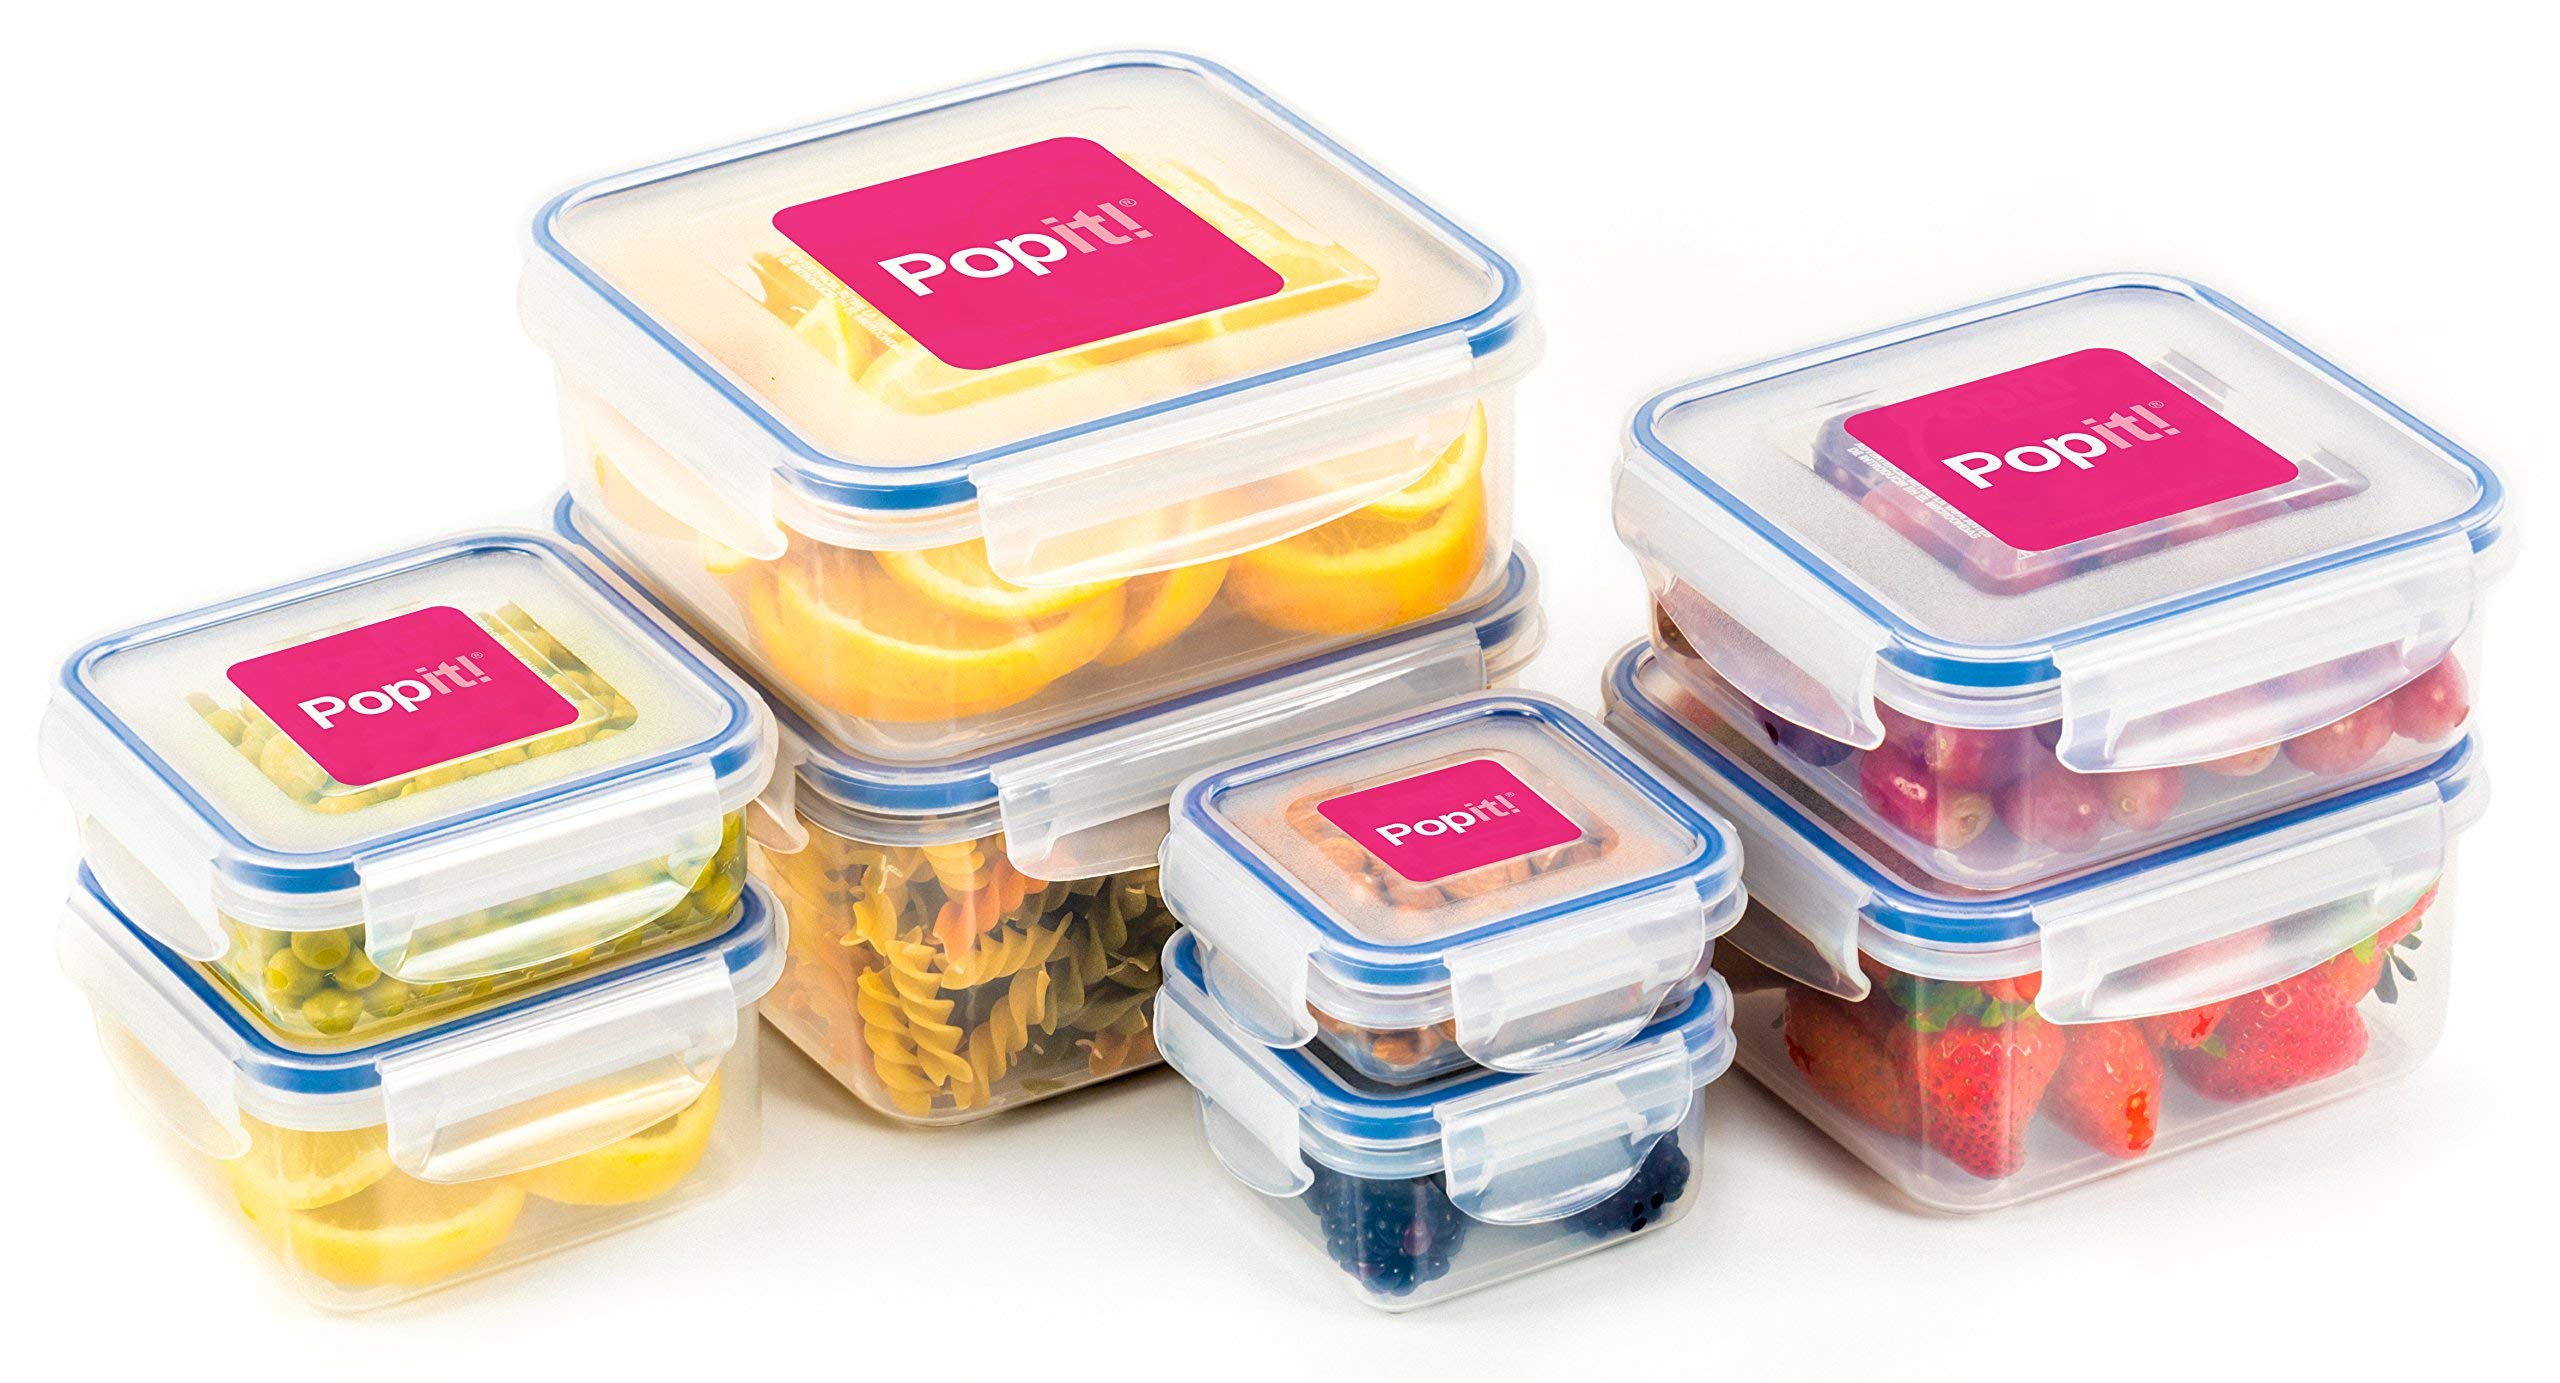 74a4f147b Amazon.com  Popit! Food Storage Containers with Lids  The Little Big ...